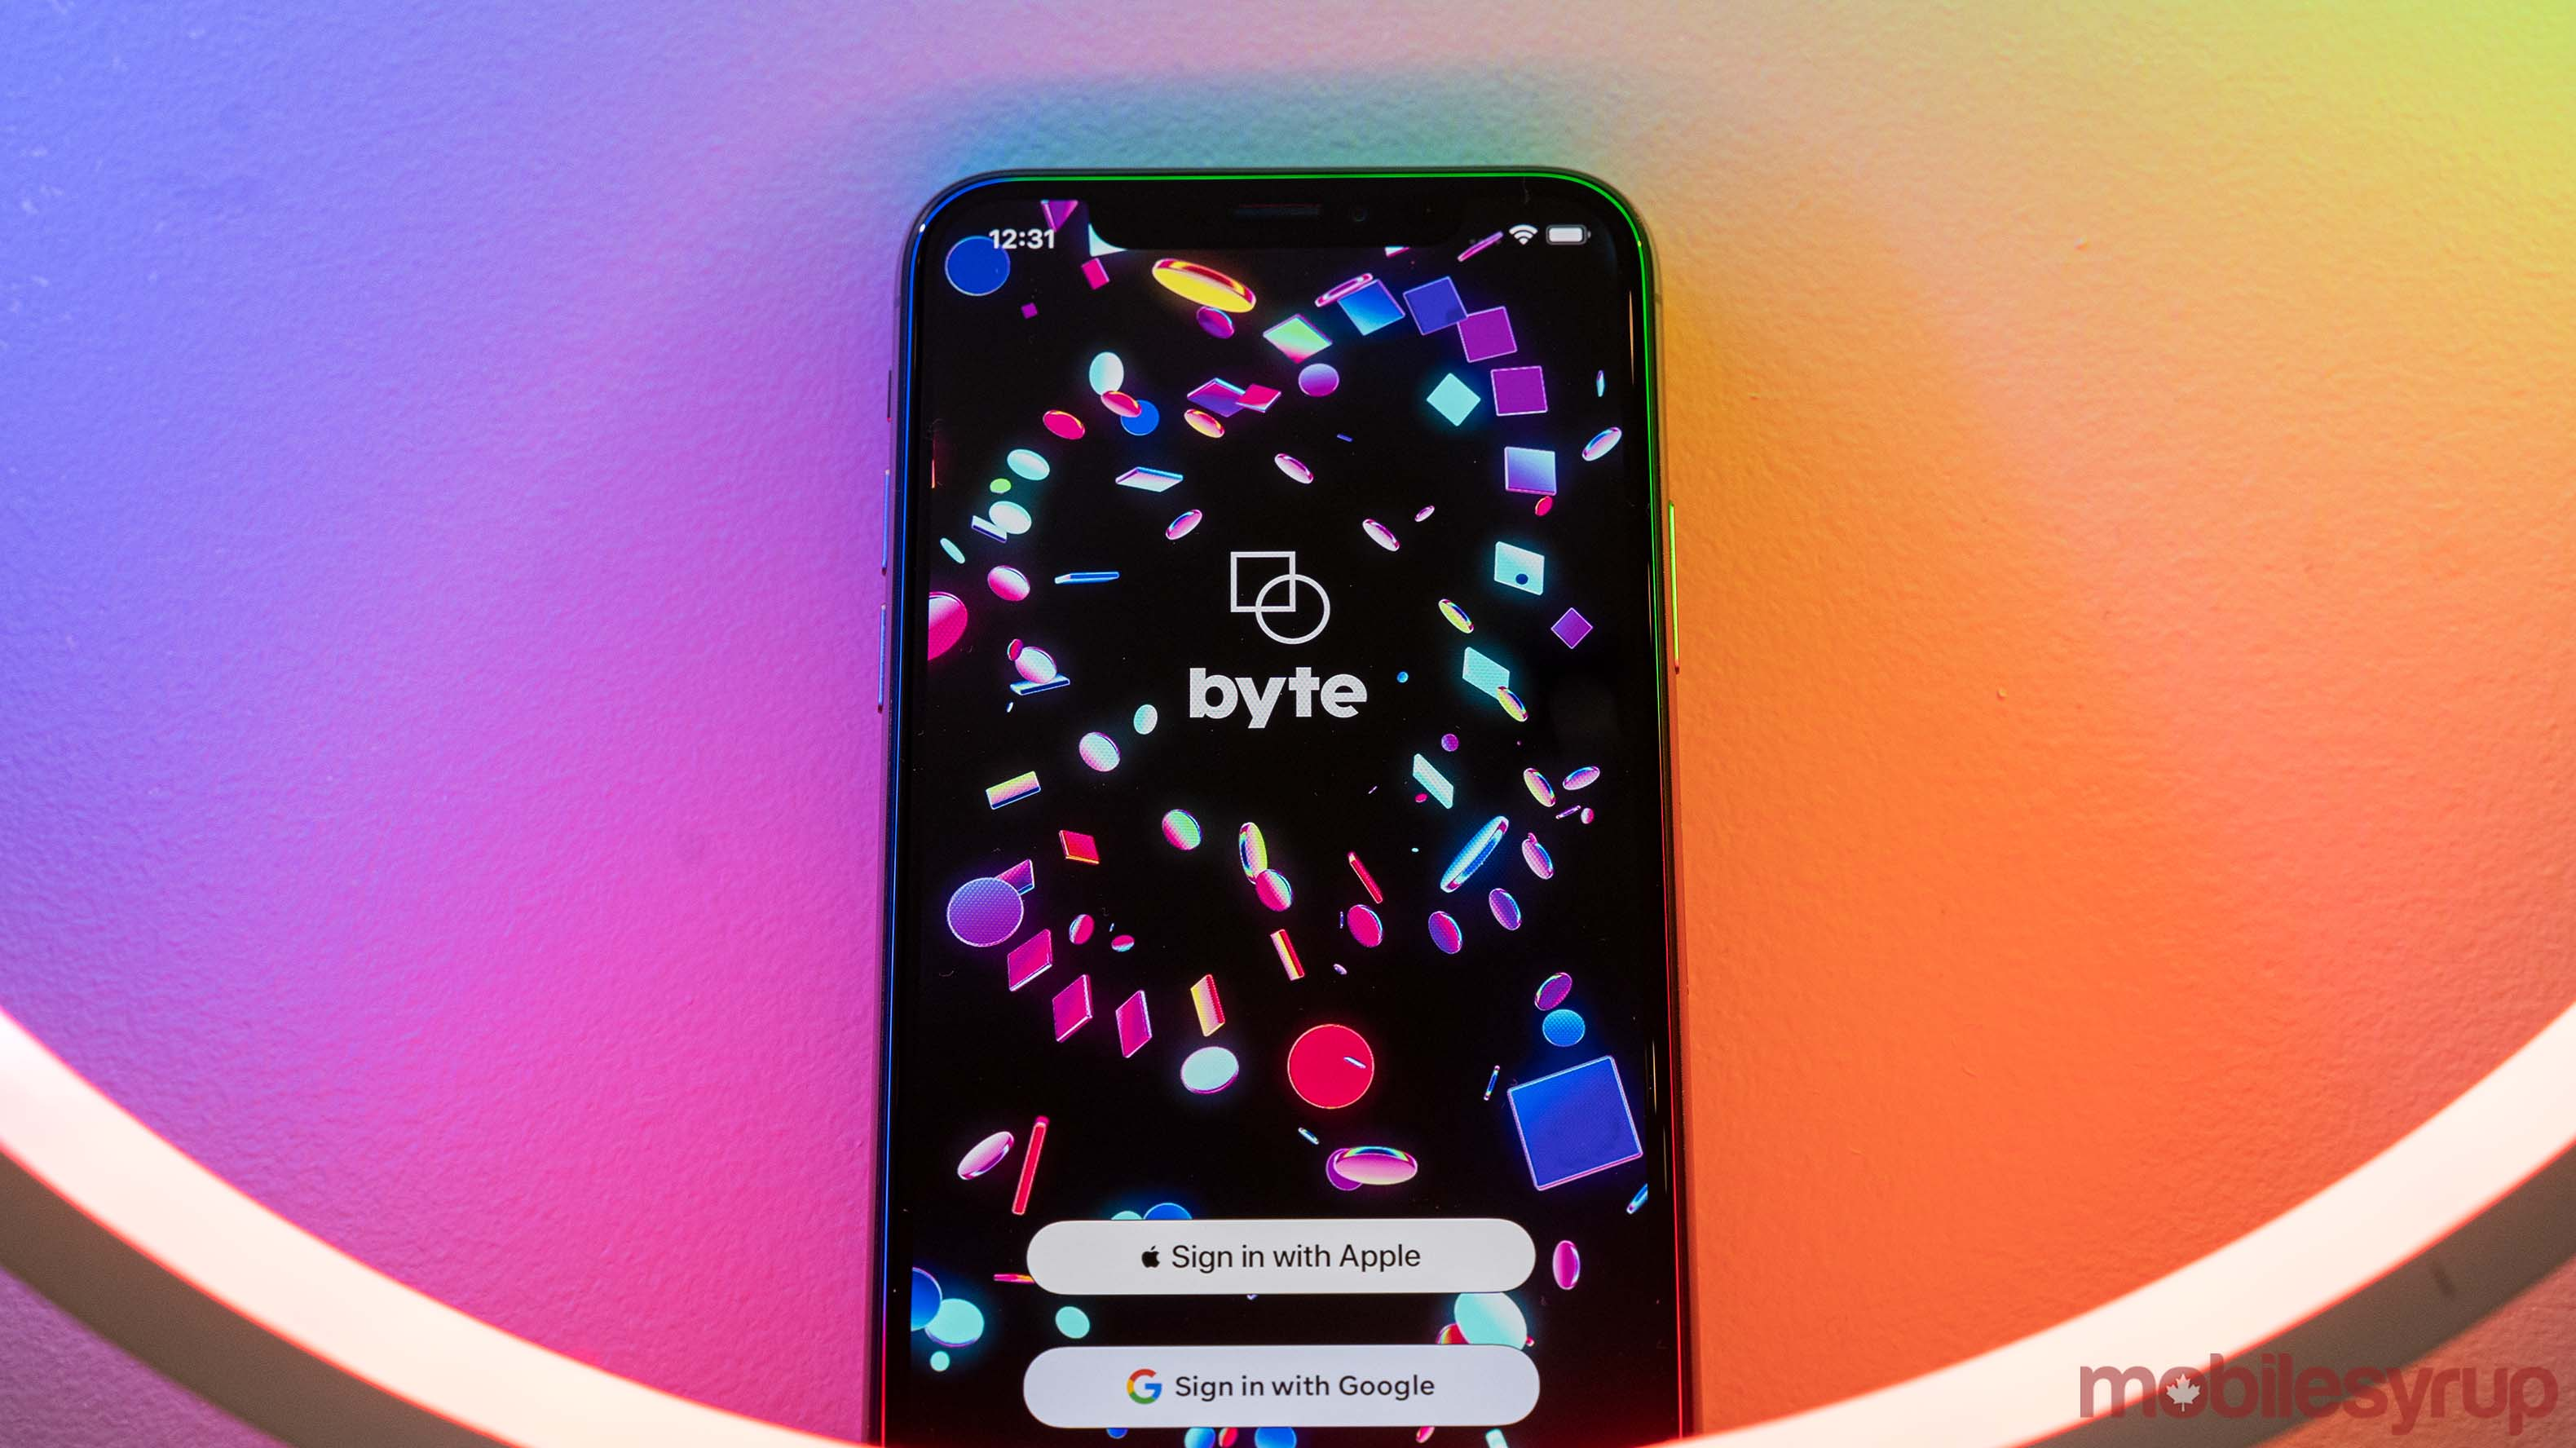 Vine successor Byte arrives for iPhone, Android with focus on creators